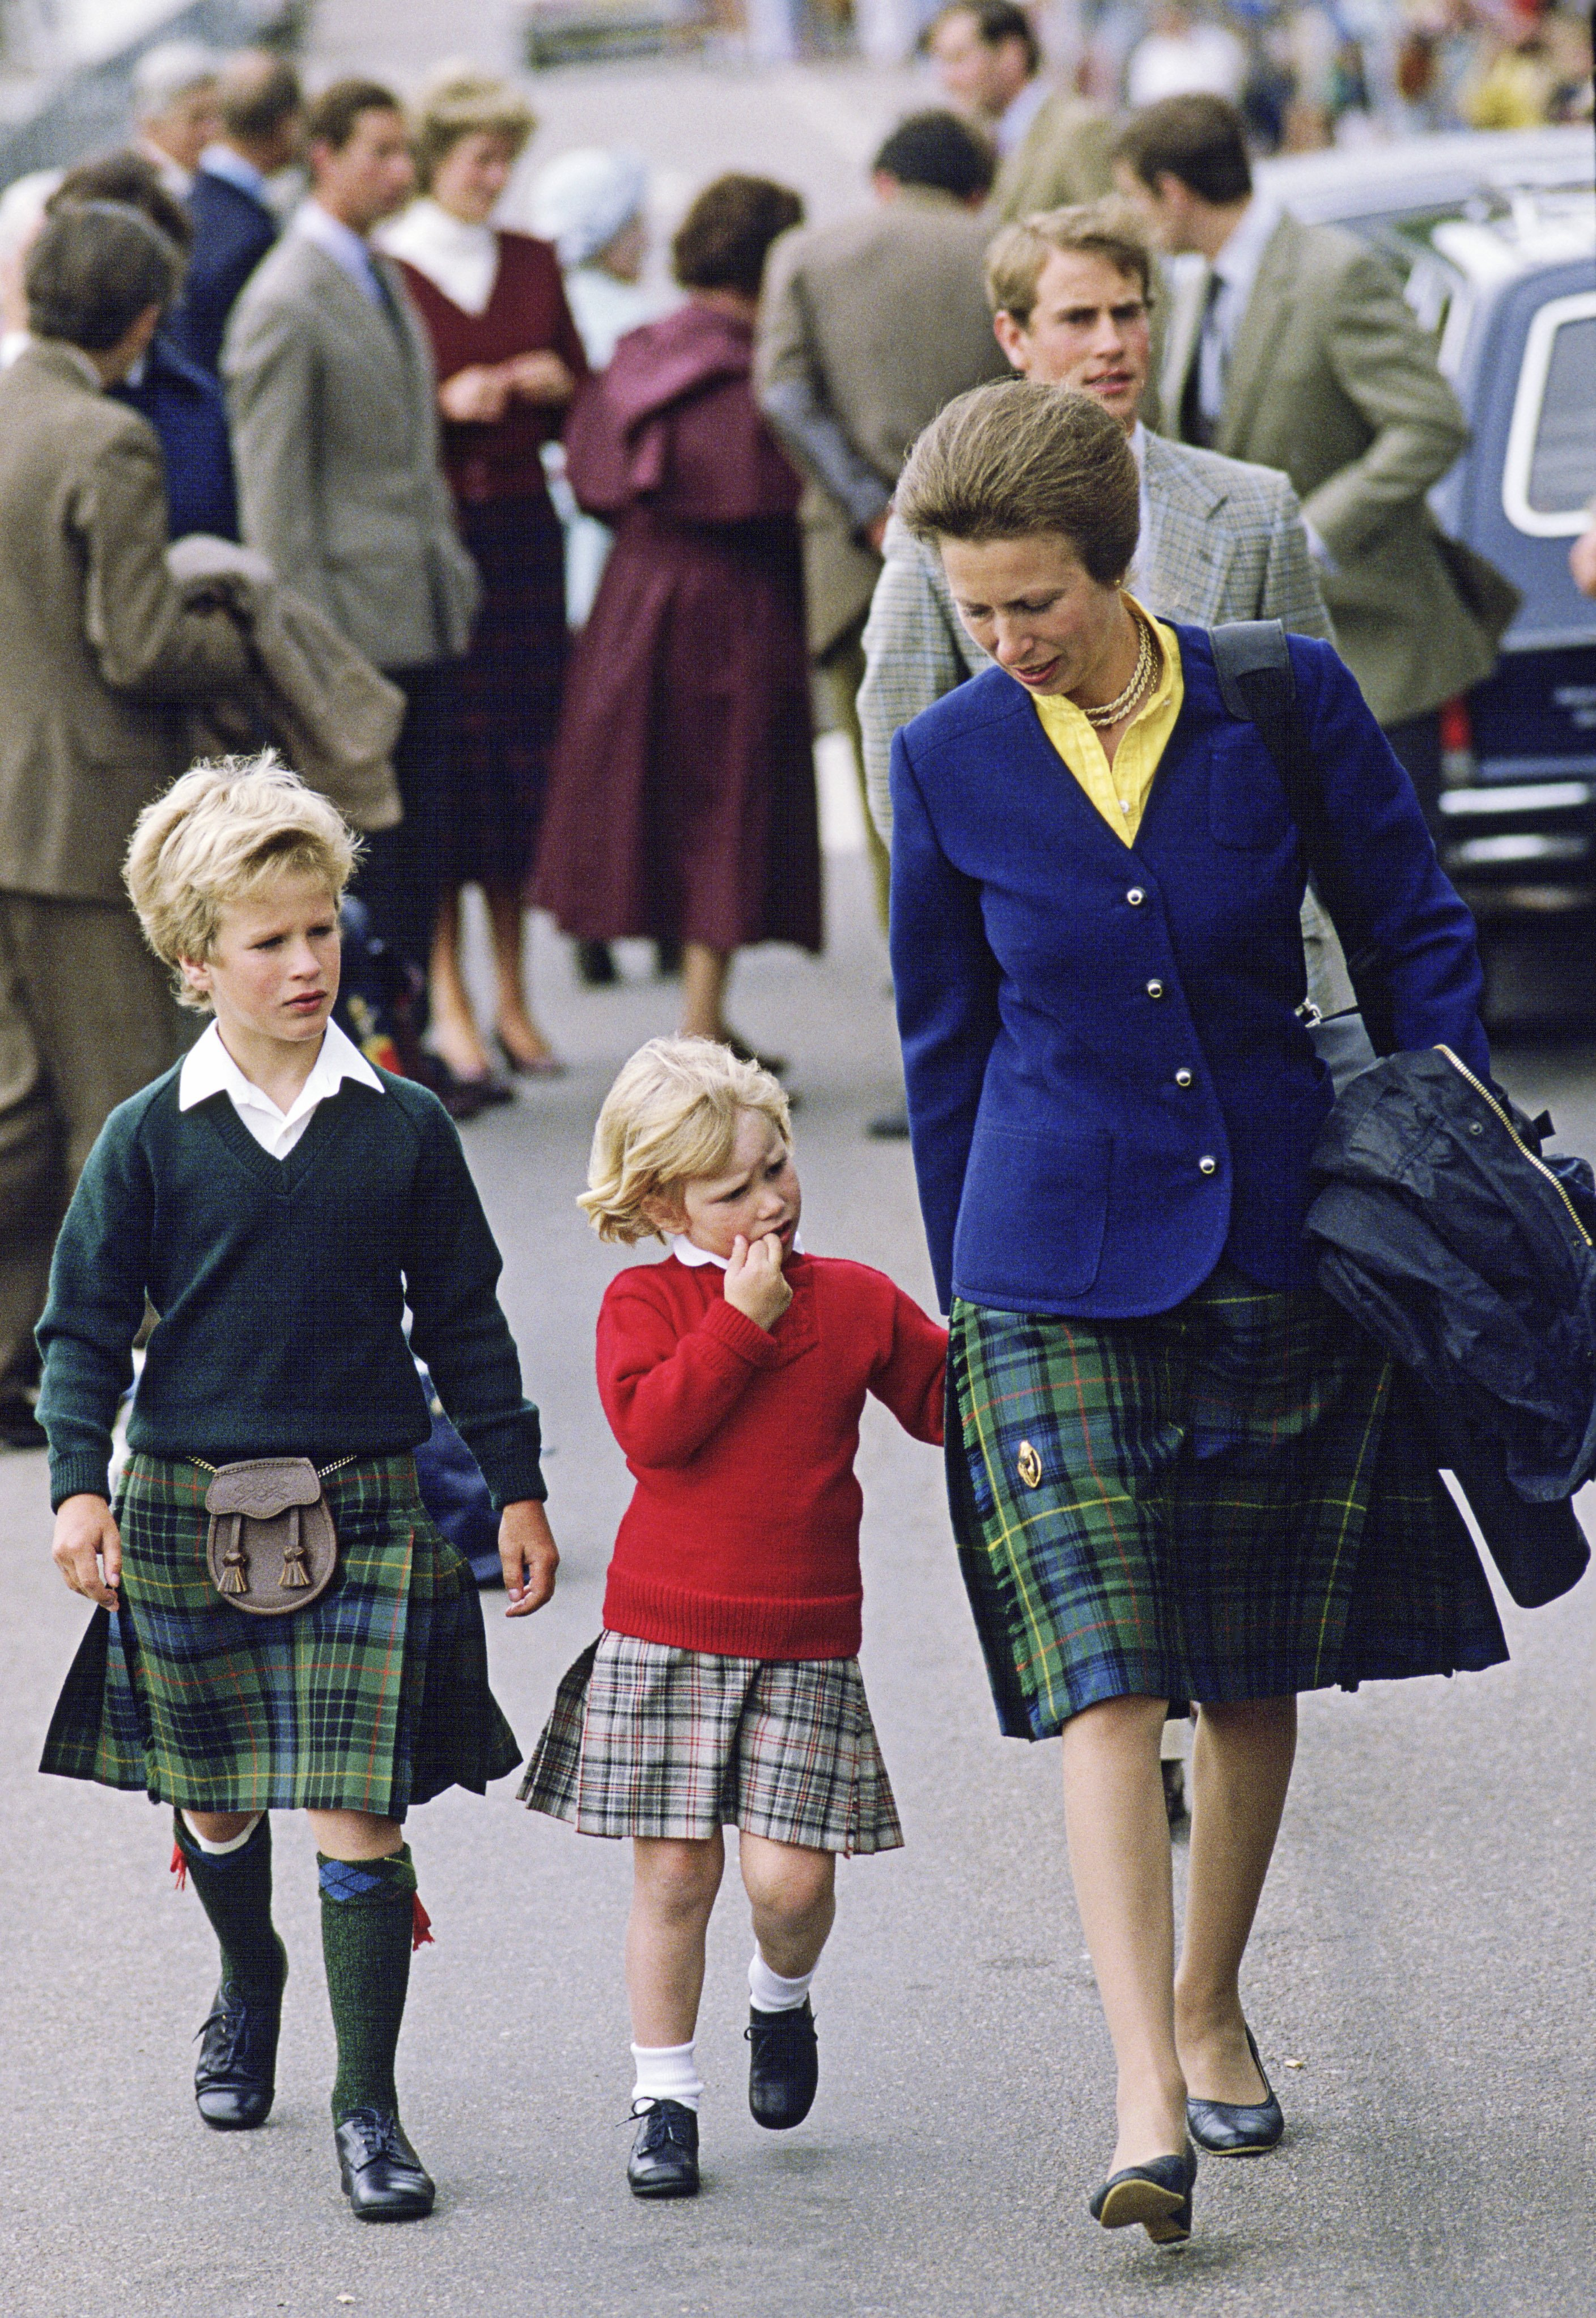 Princess Anne with children Zara and Peter Phillips. | Photo: Getty Images